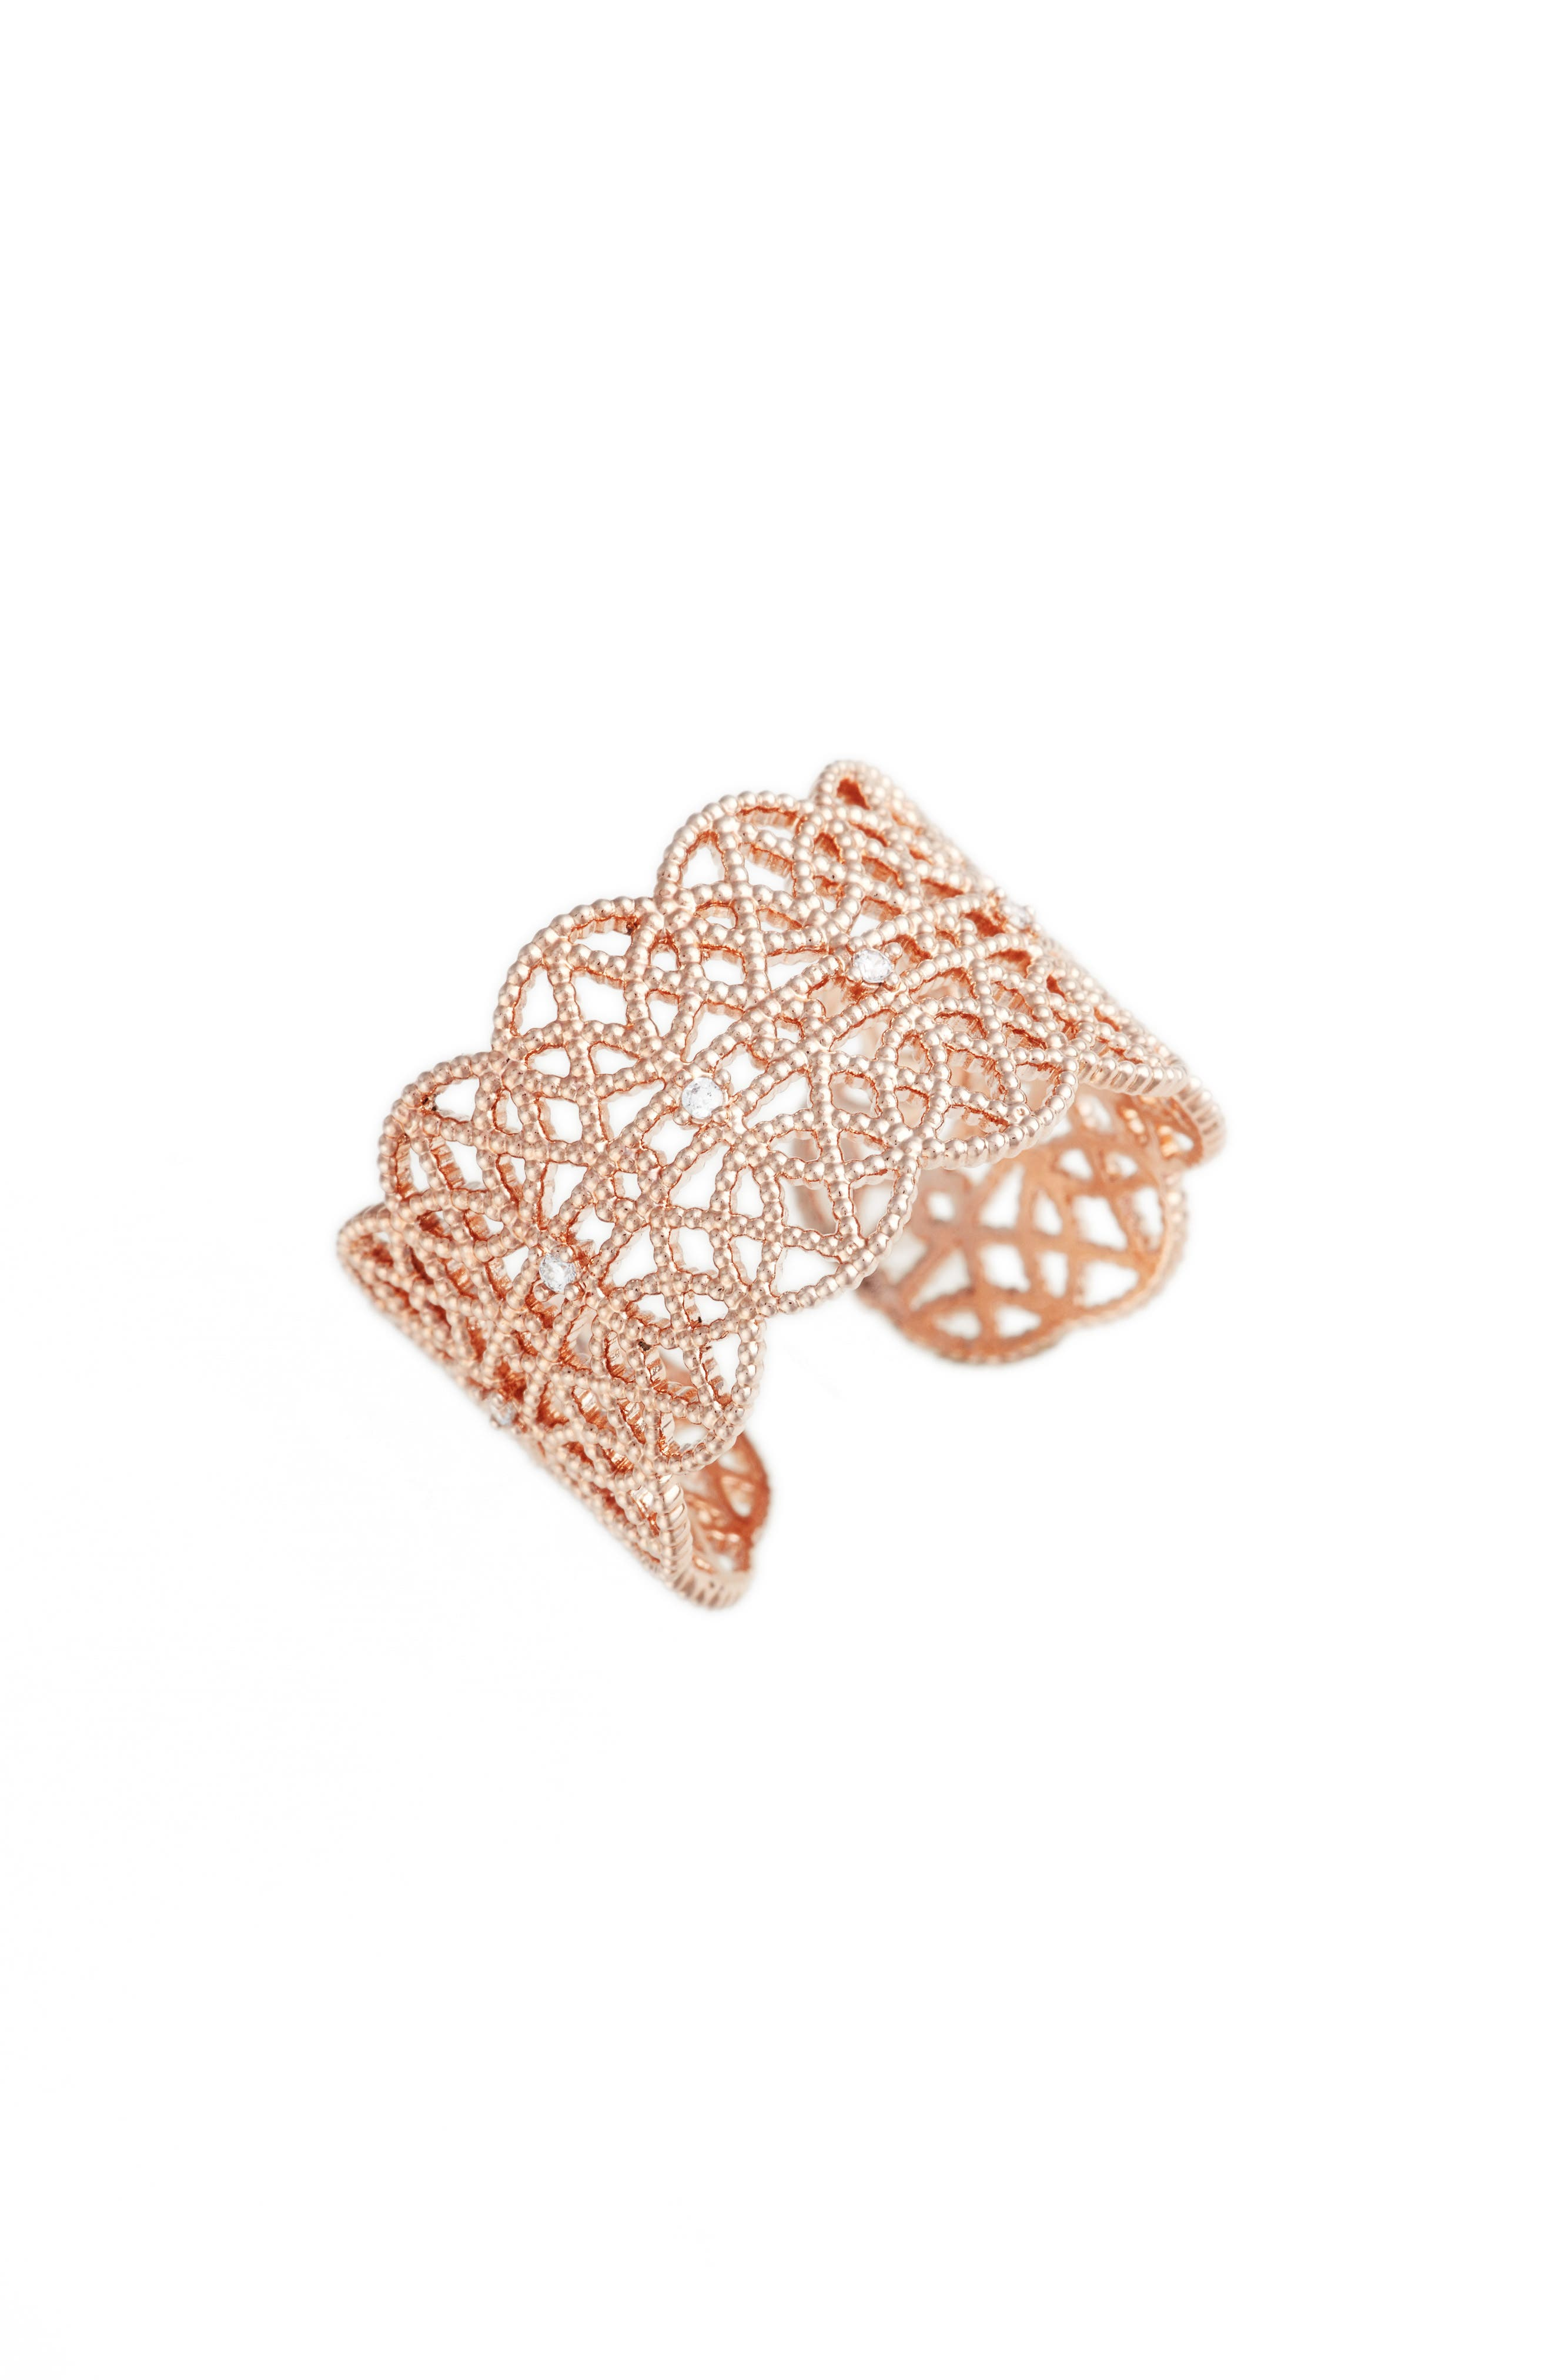 Main Image - Jules Smith Pavé Lace Cuff Ring